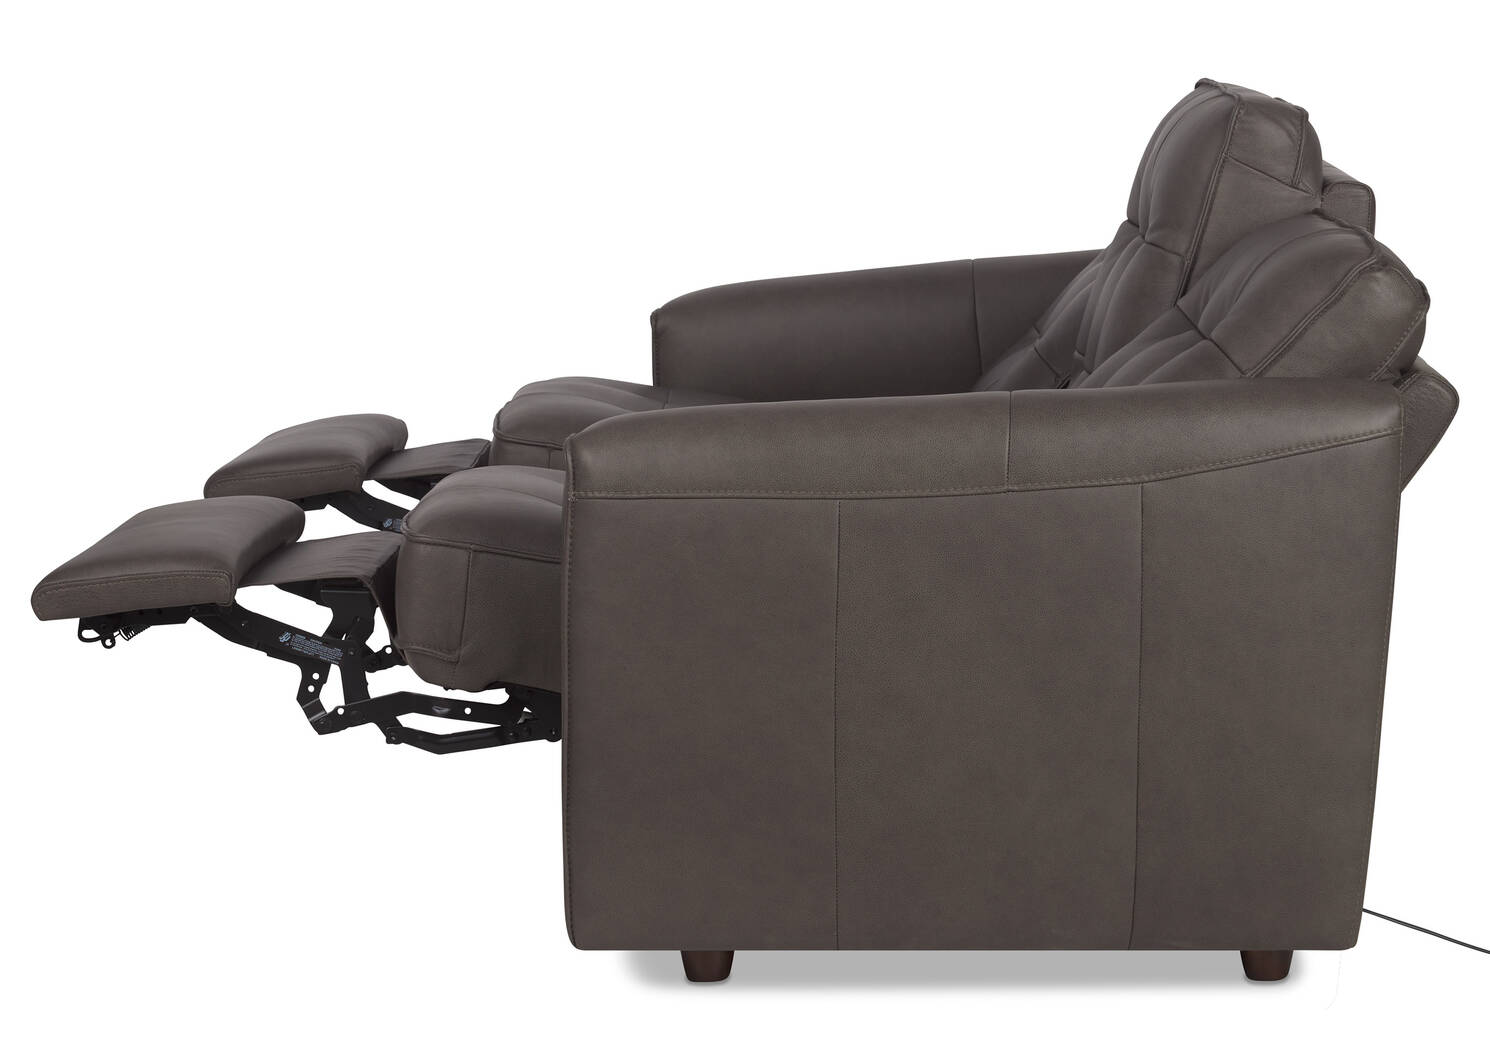 Payton Leather Reclining Sofa -Ashby Stn